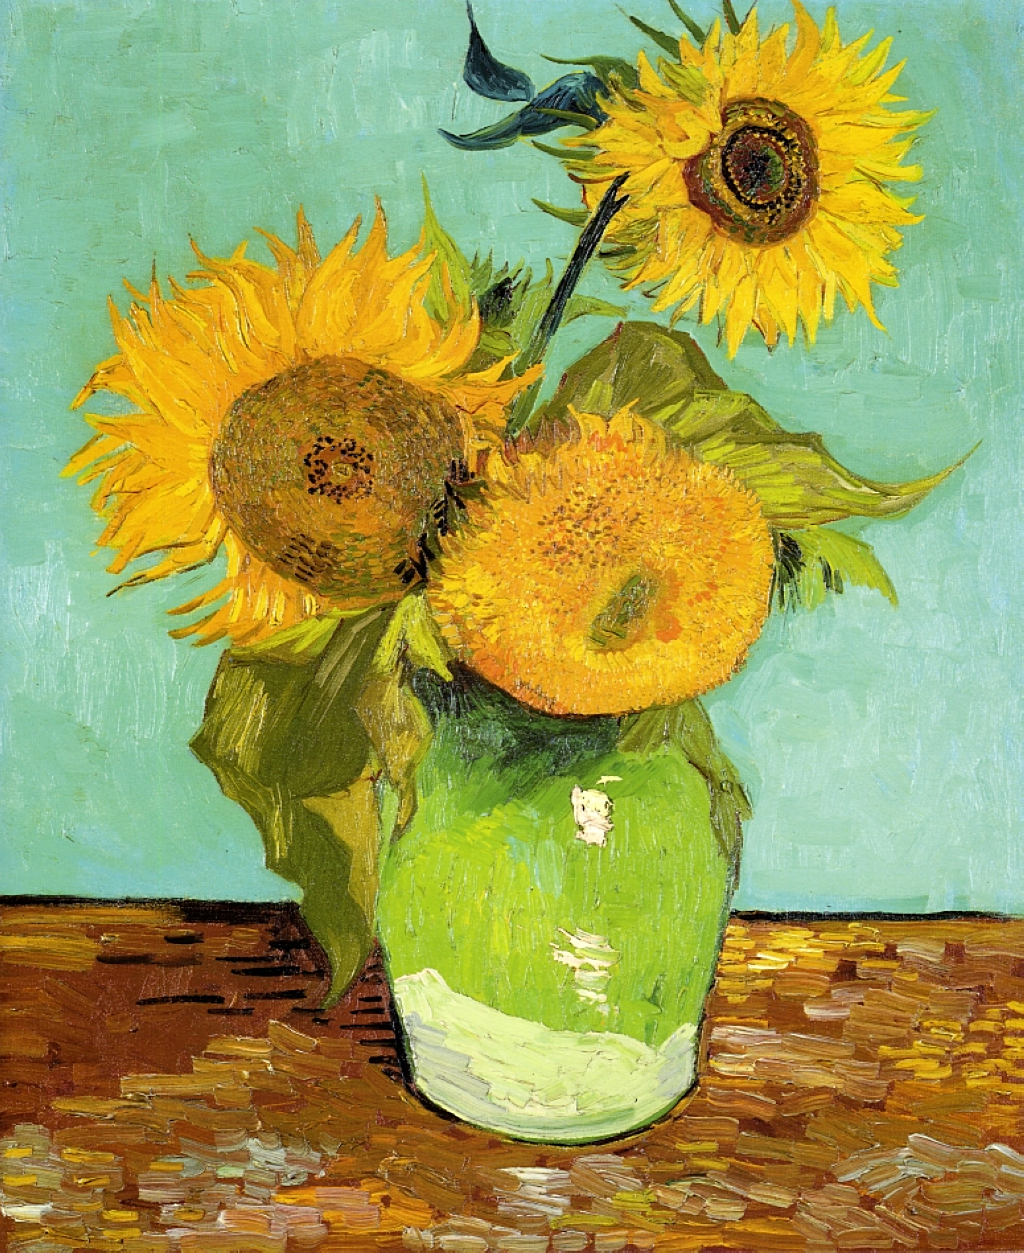 Vincent van Gogh, Sunflowers,1888